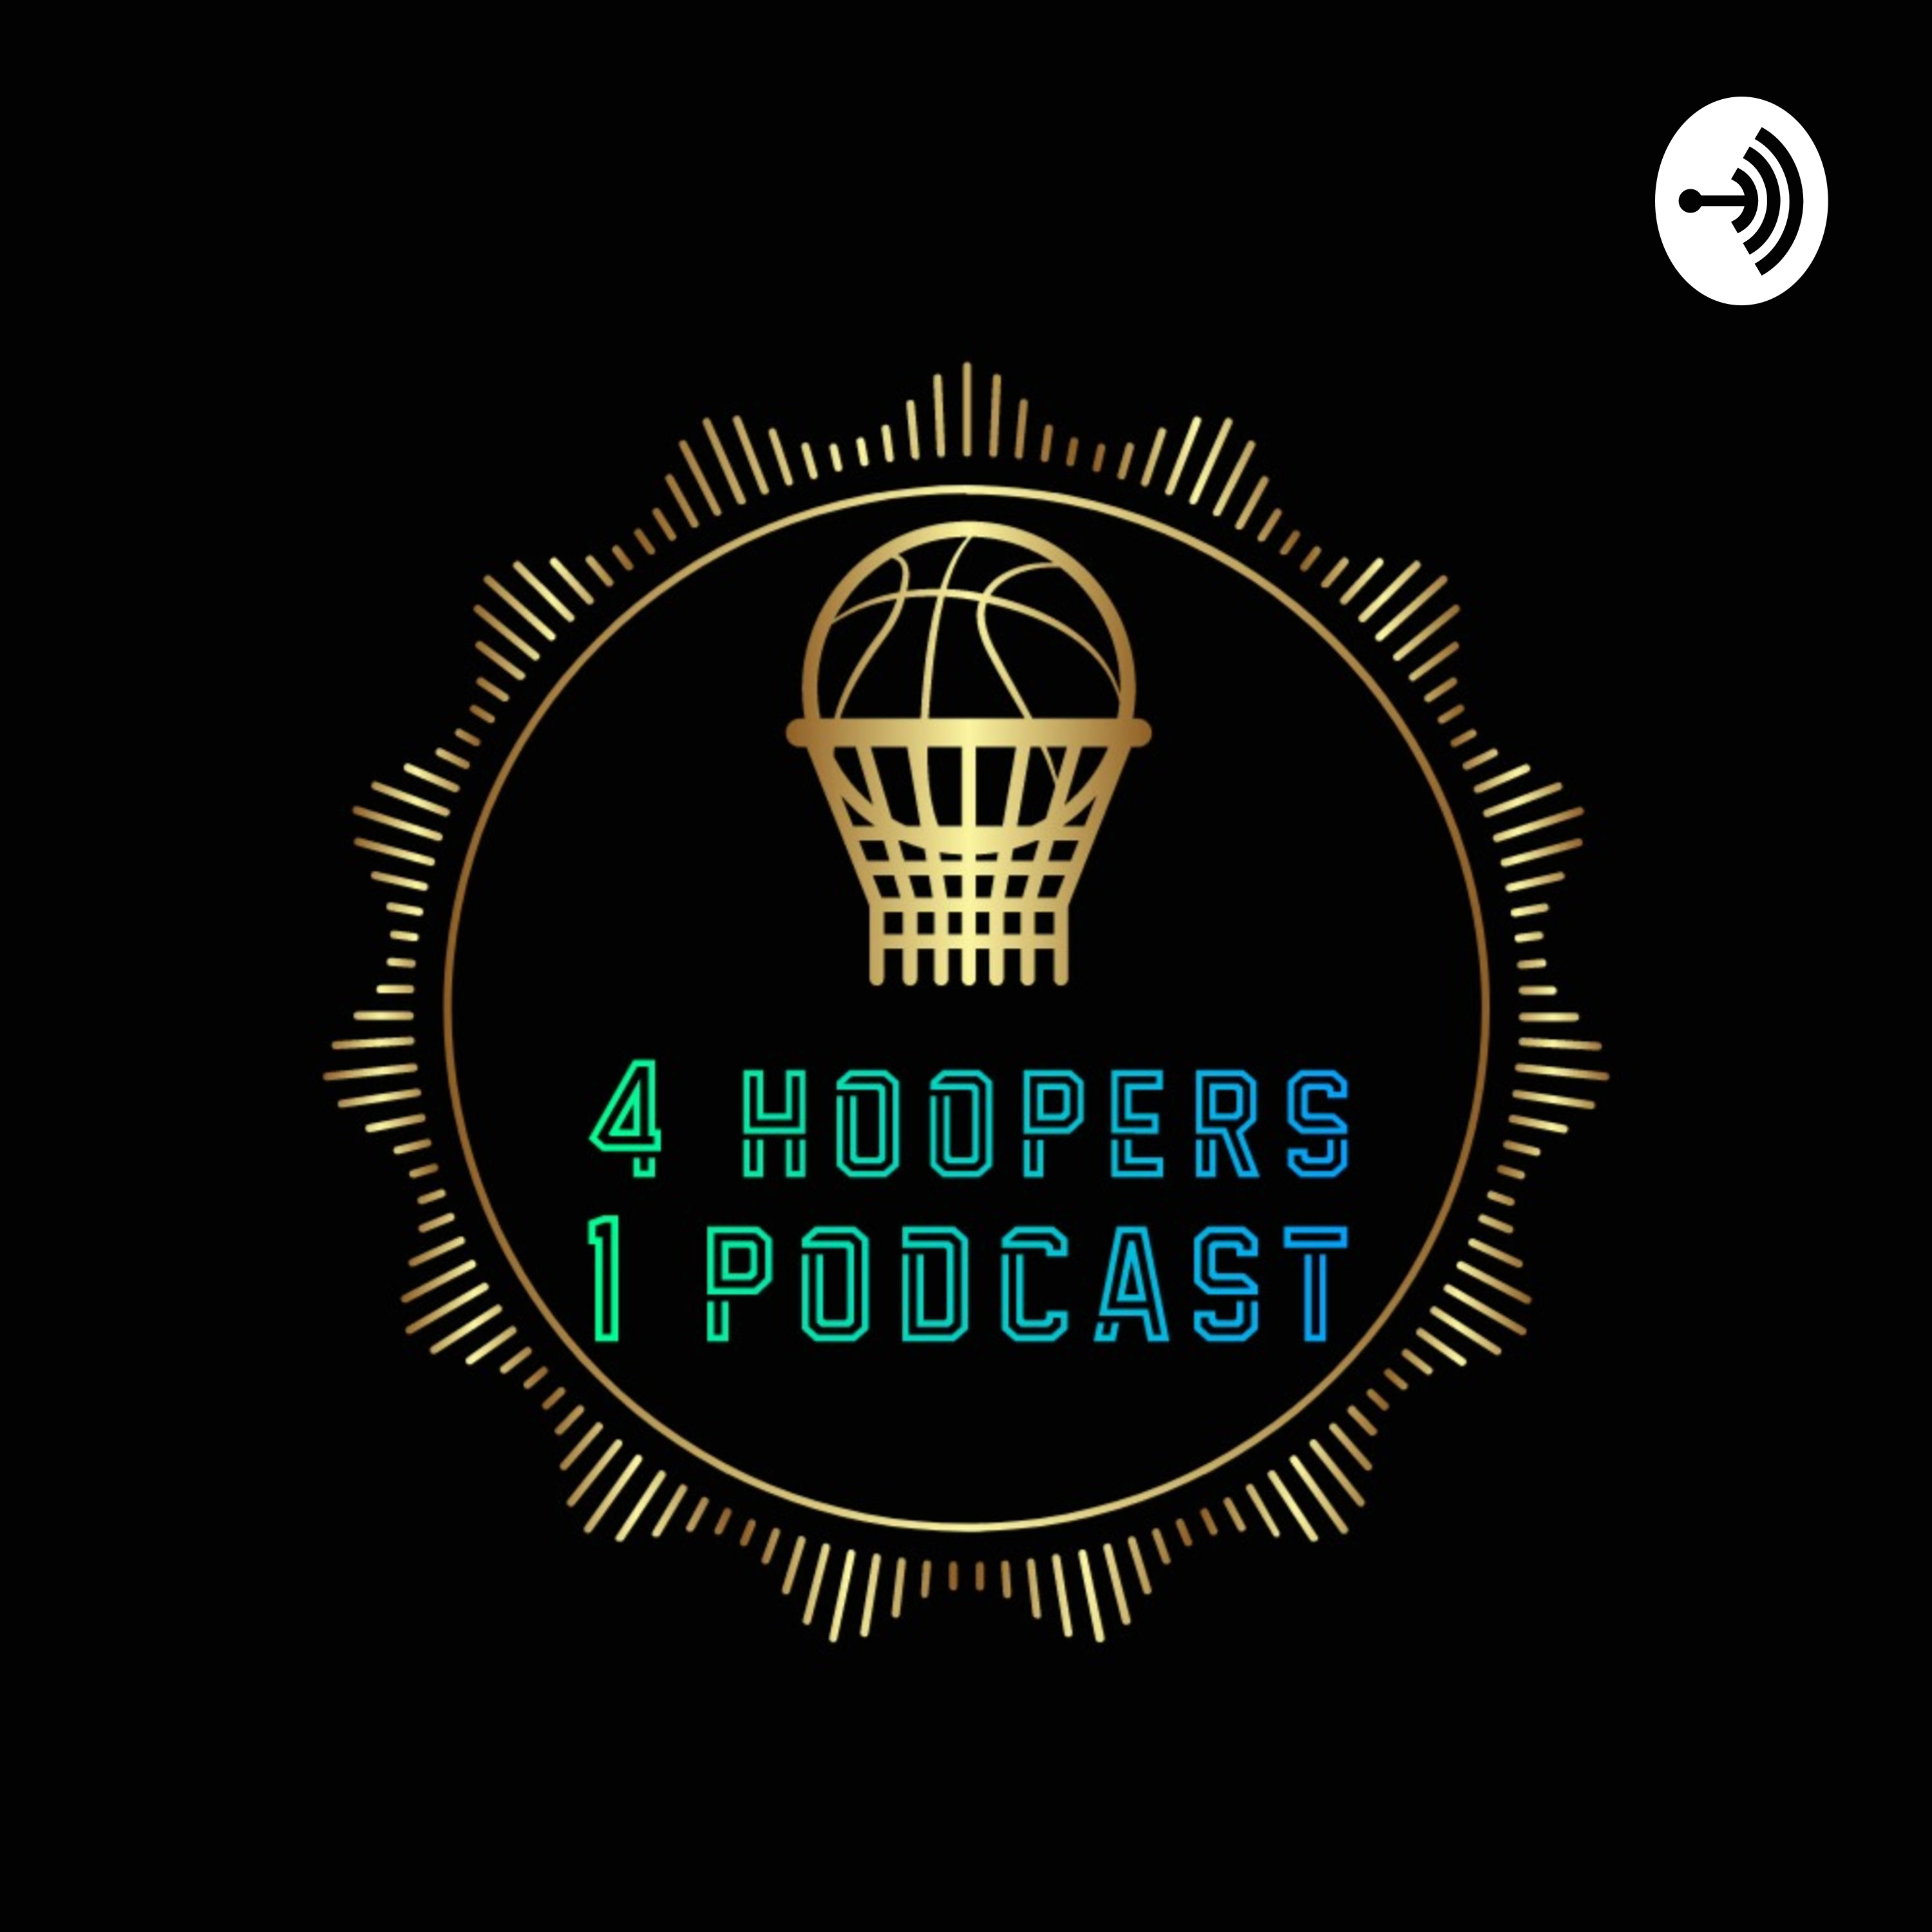 4 Hoopers 1 Podcast